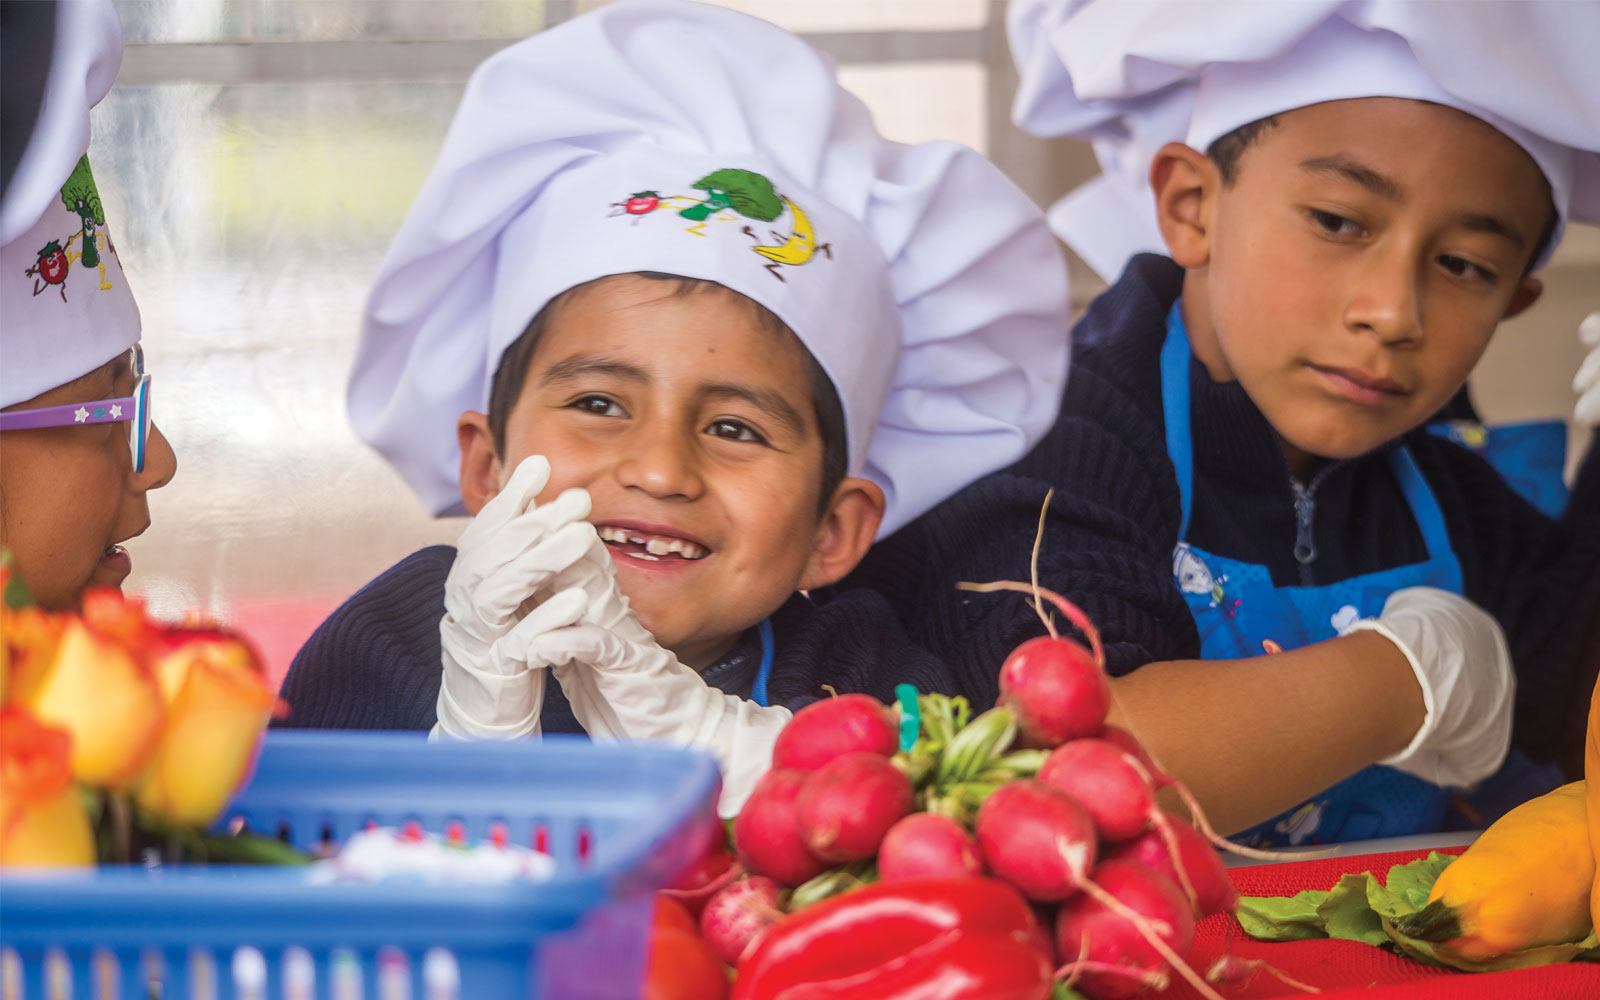 Kids in Quito, Ecuador, enjoy healthier food in school cafeterias through the Partnership for Healthy Cities.